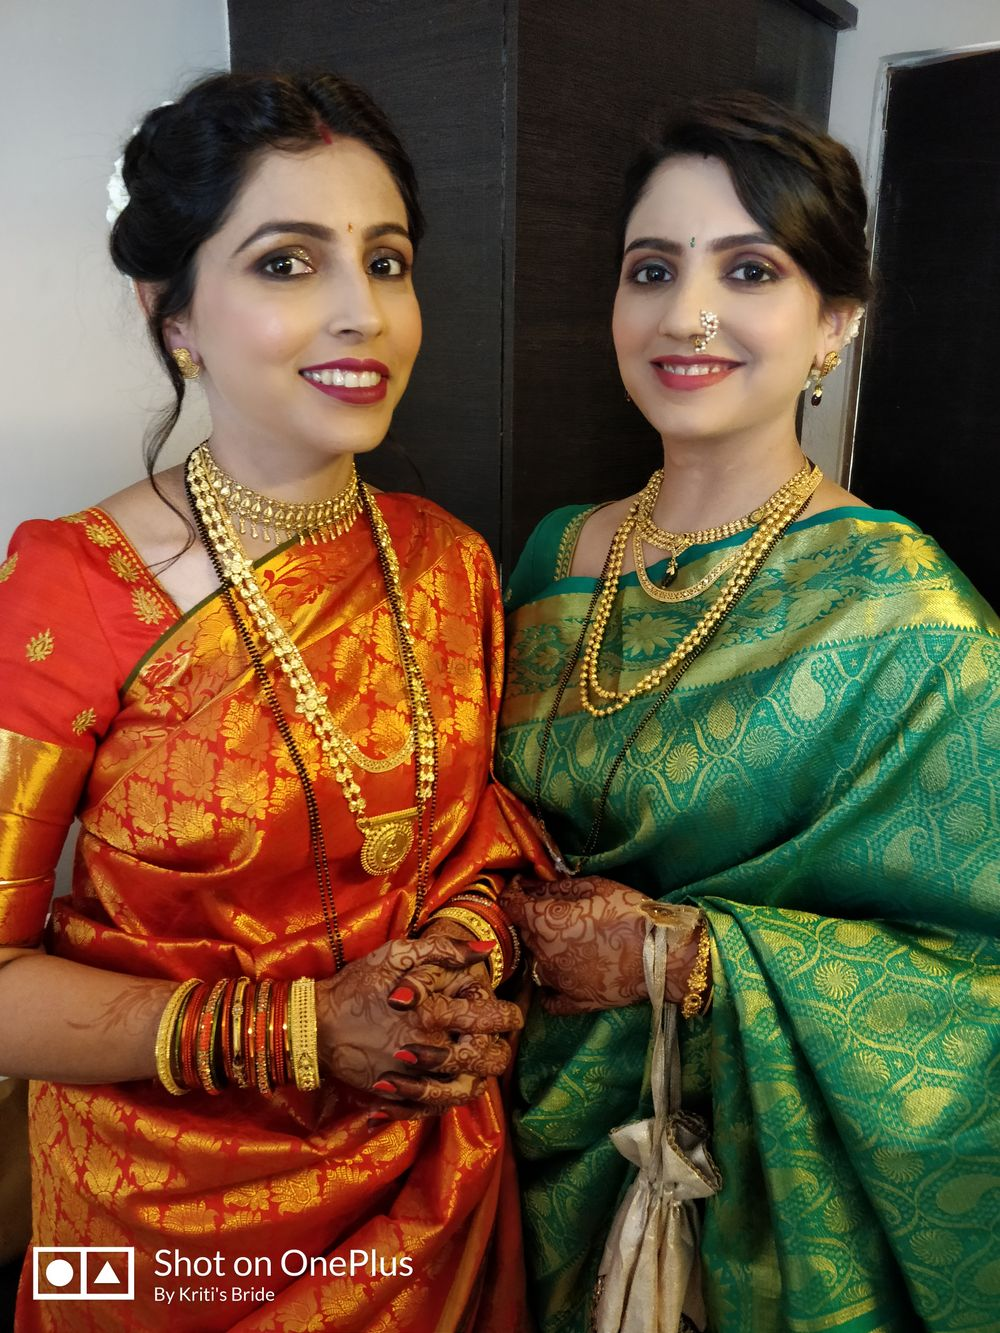 Photo From South Indian brides - By KritisBride